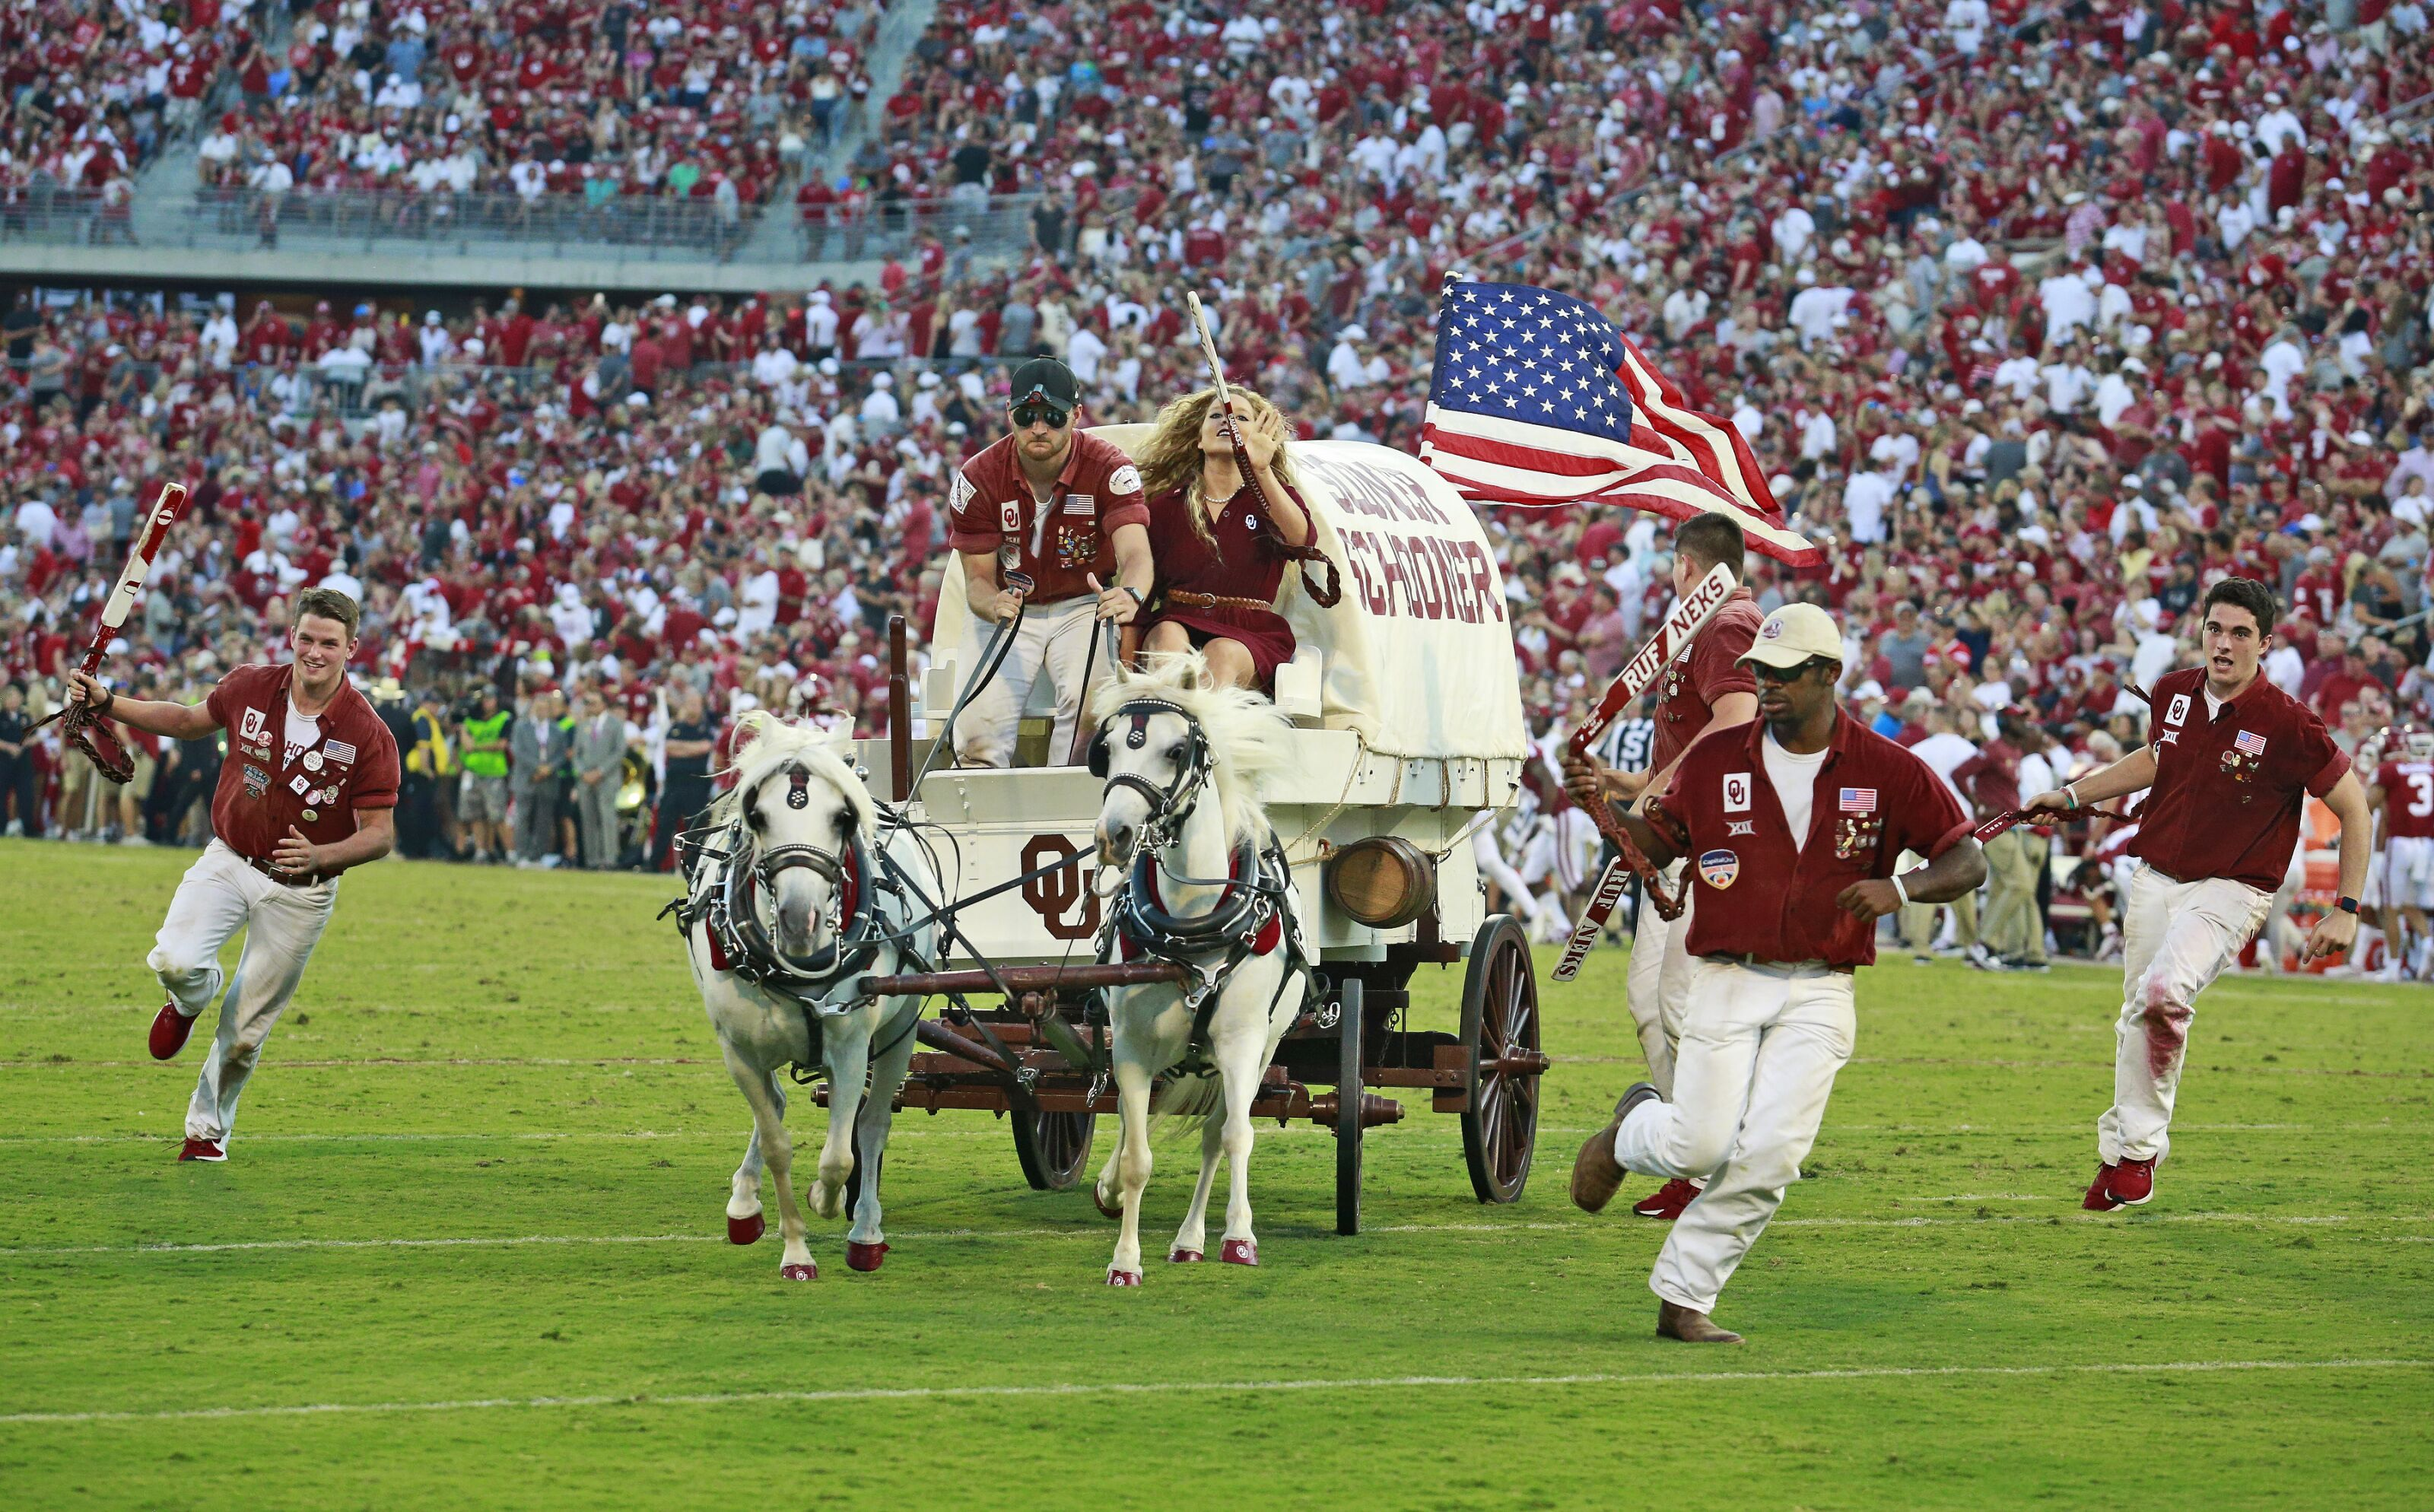 Oklahoma football: Sooner Schooner tips over, sending passengers flying